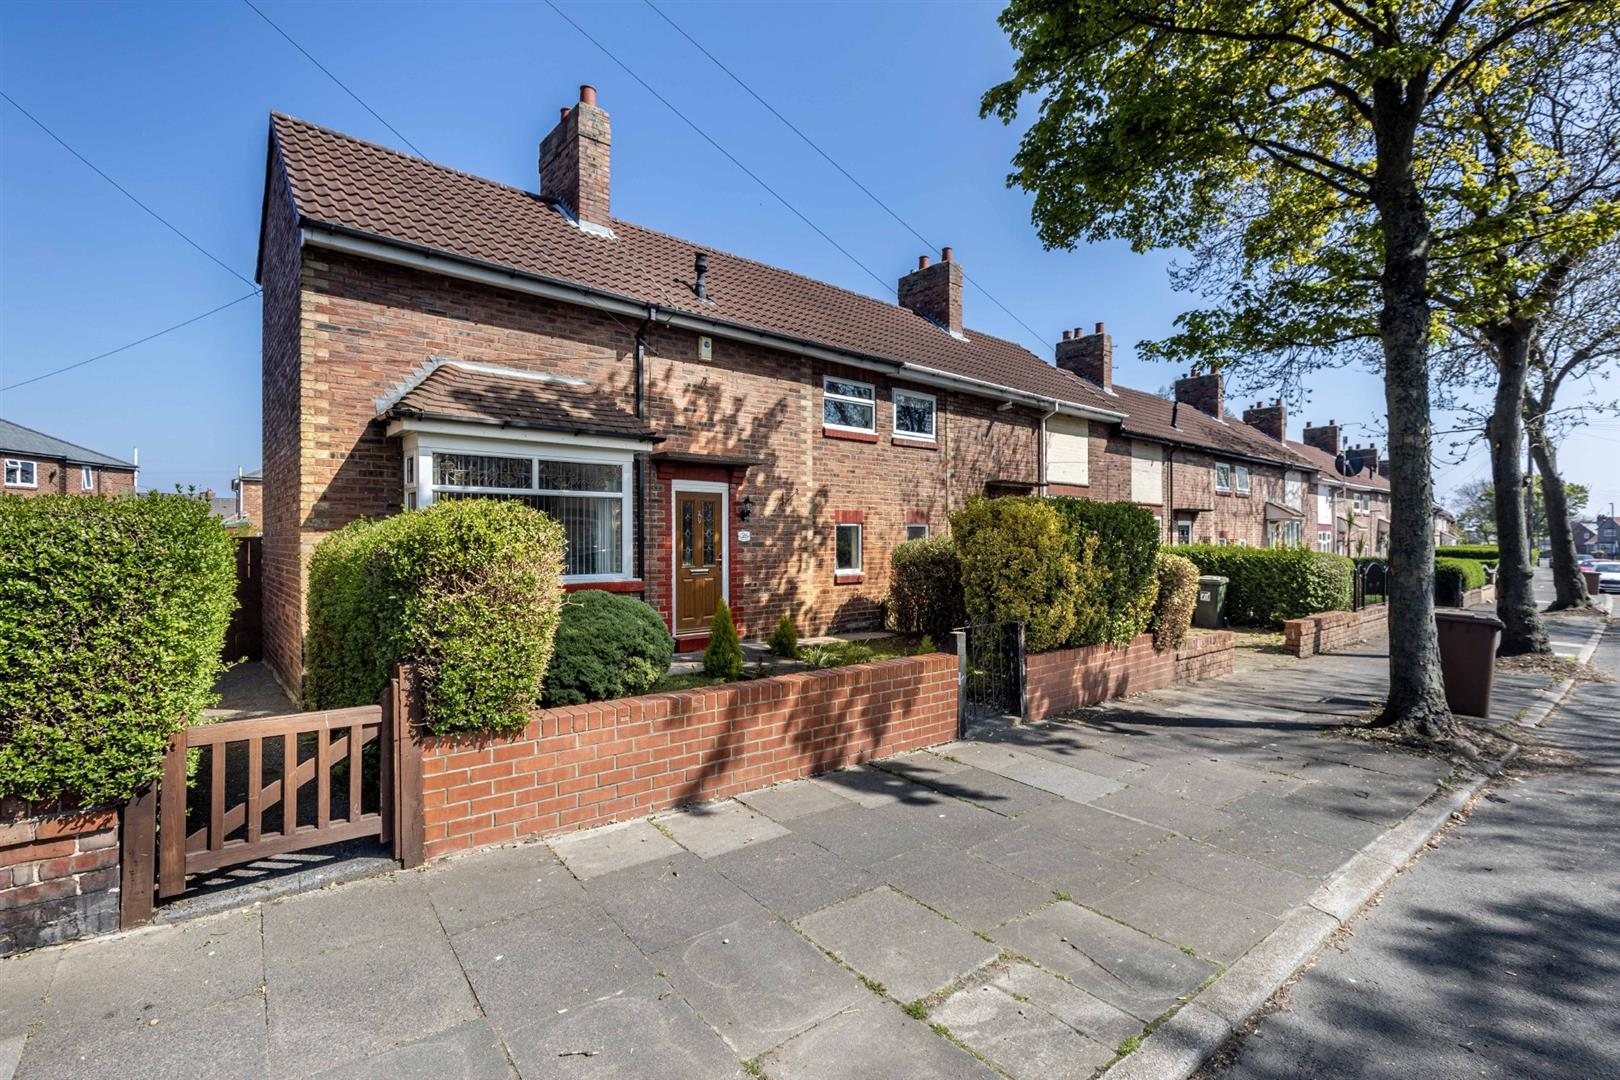 3 bed end of terrace house for sale in North Shields, NE29 7JD 0